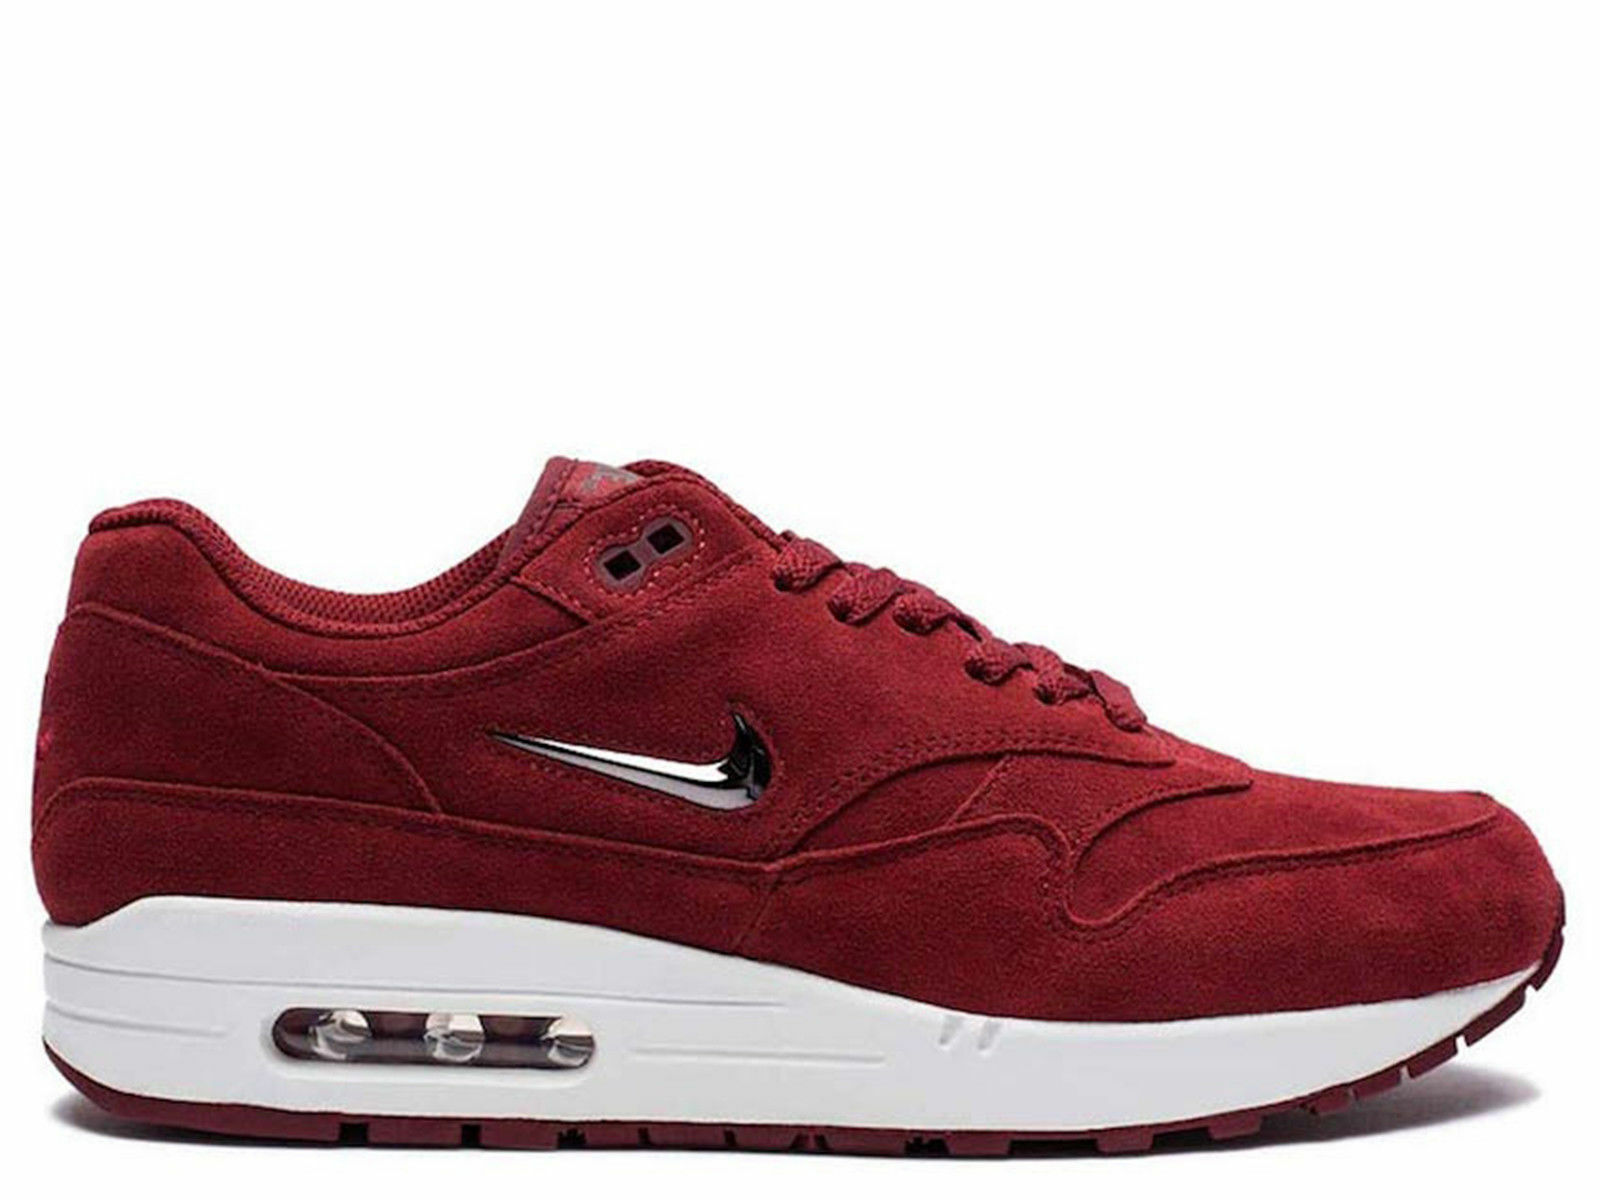 NIKE AIR MAX 1 PREMIUM CASUAL SHOES SIZE  12 TEAM RED GREY 918354 600